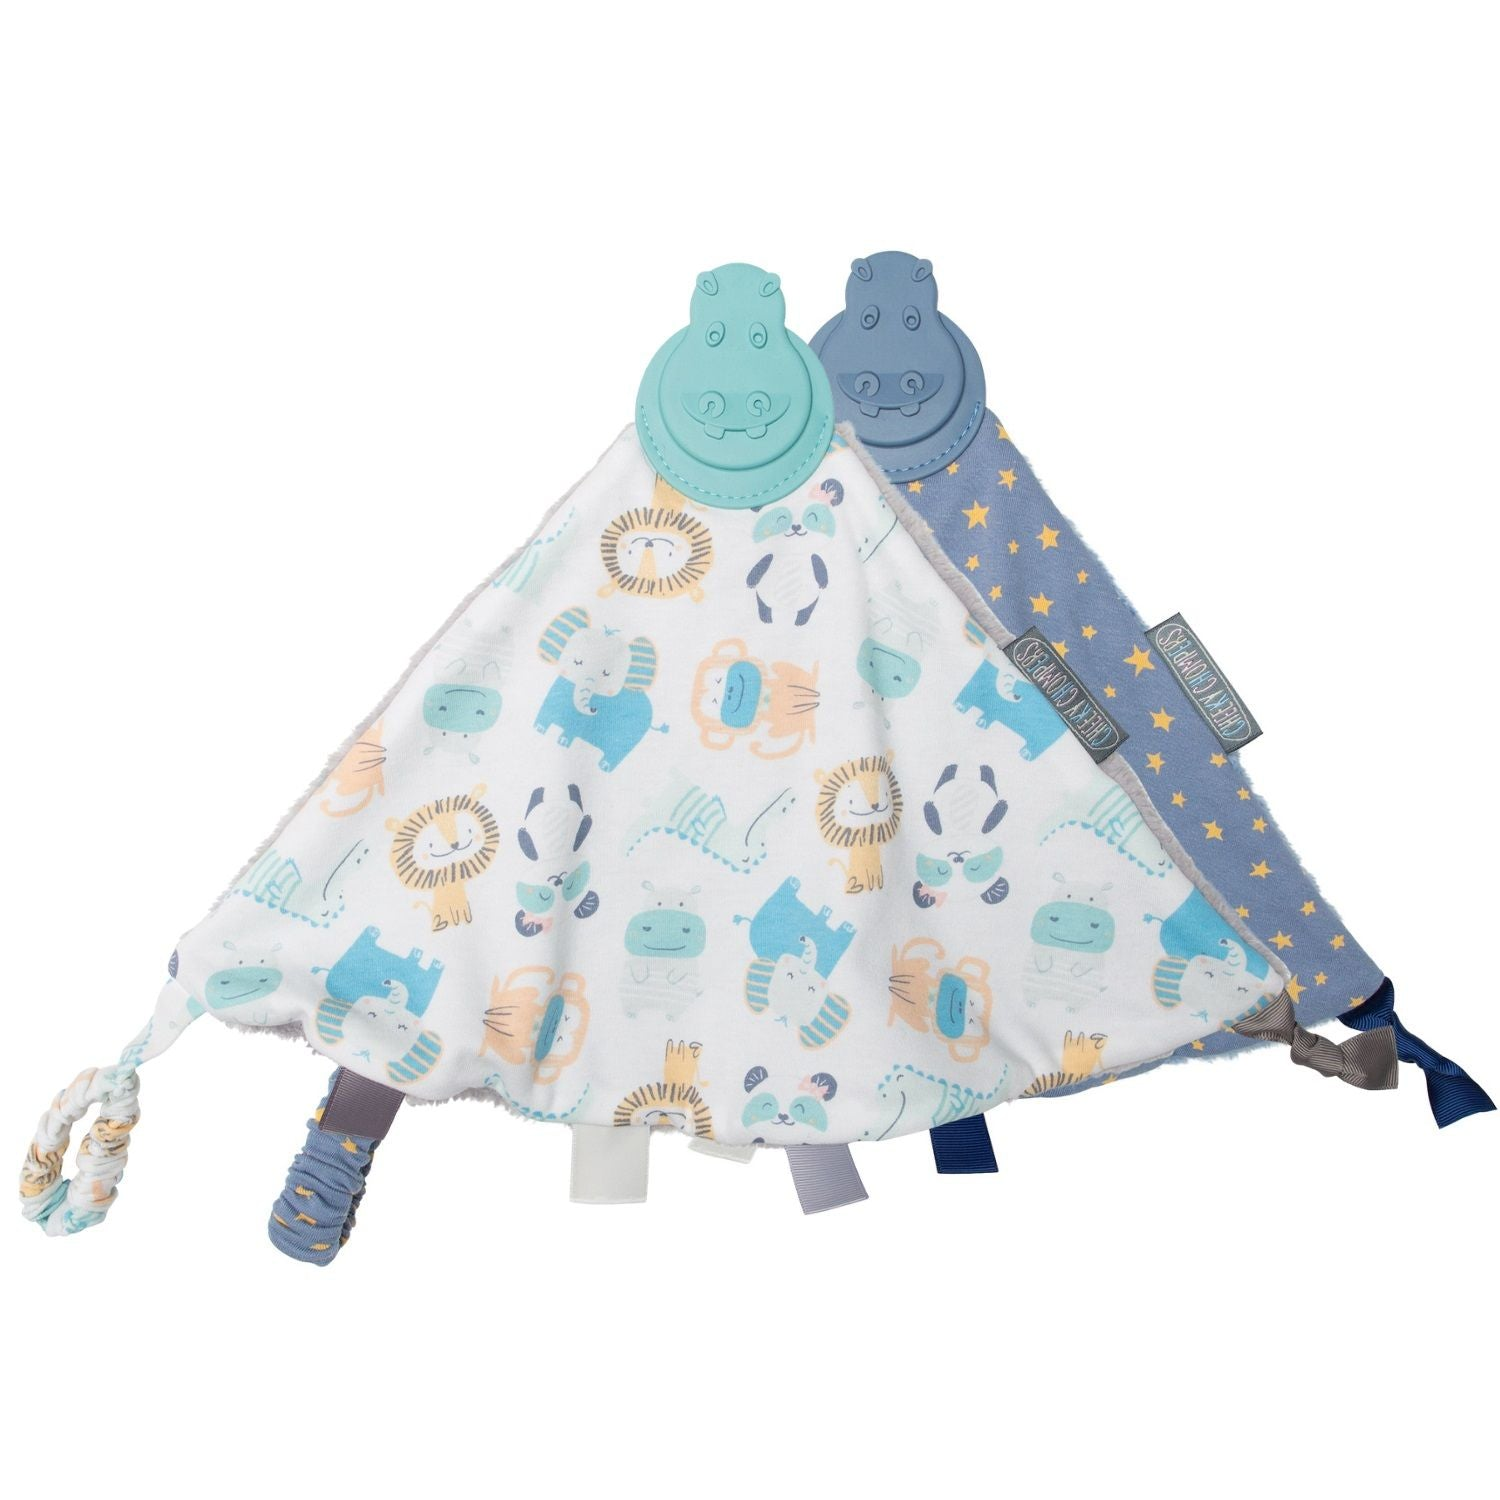 Cheeky Animals & Stars Comfortchew - Baby Comforter With Teether 2 Pack - Cheeky Chompers